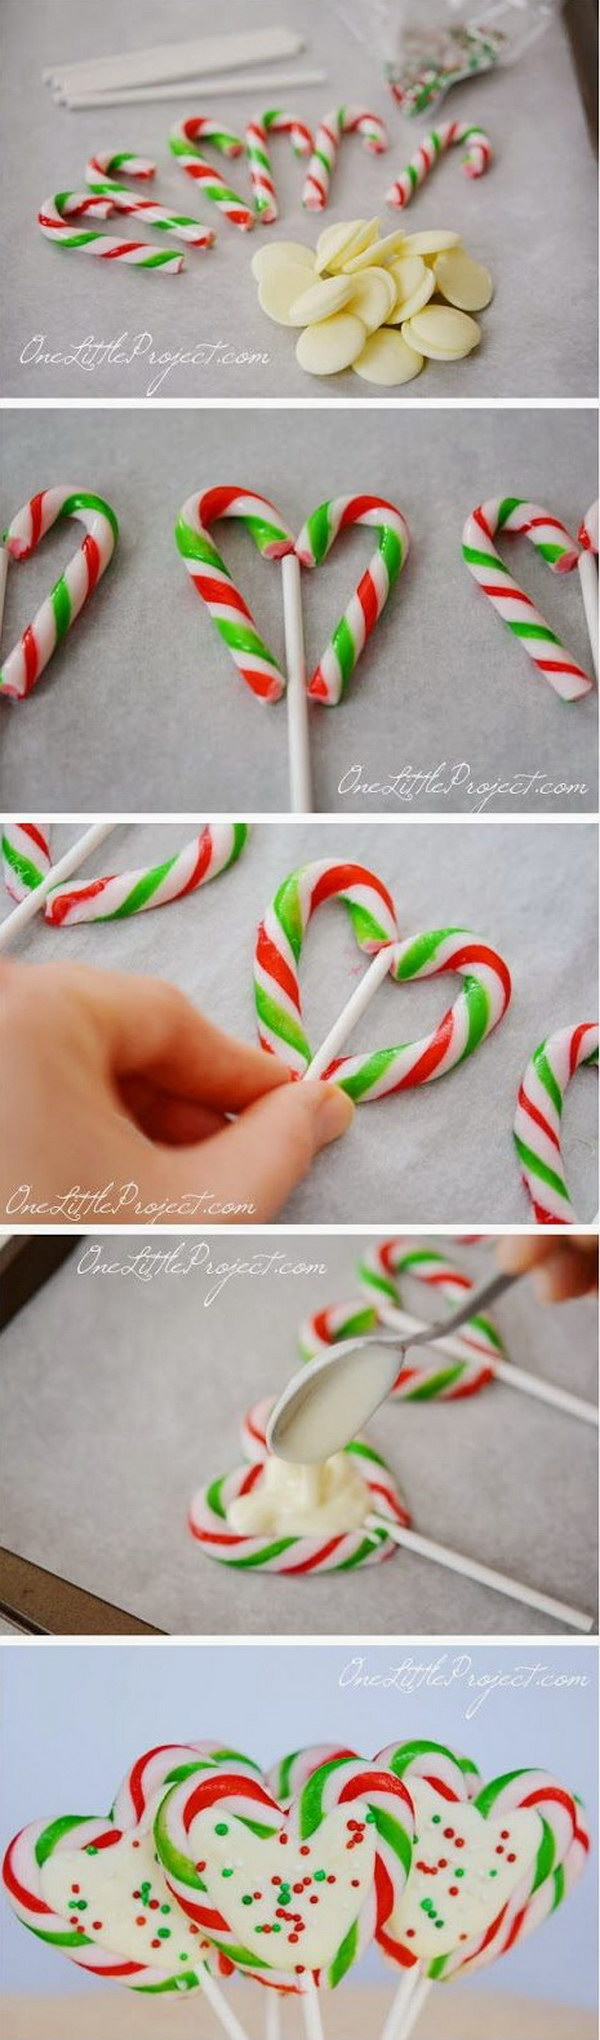 20 Awesome DIY Christmas Gift Ideas amp Tutorials